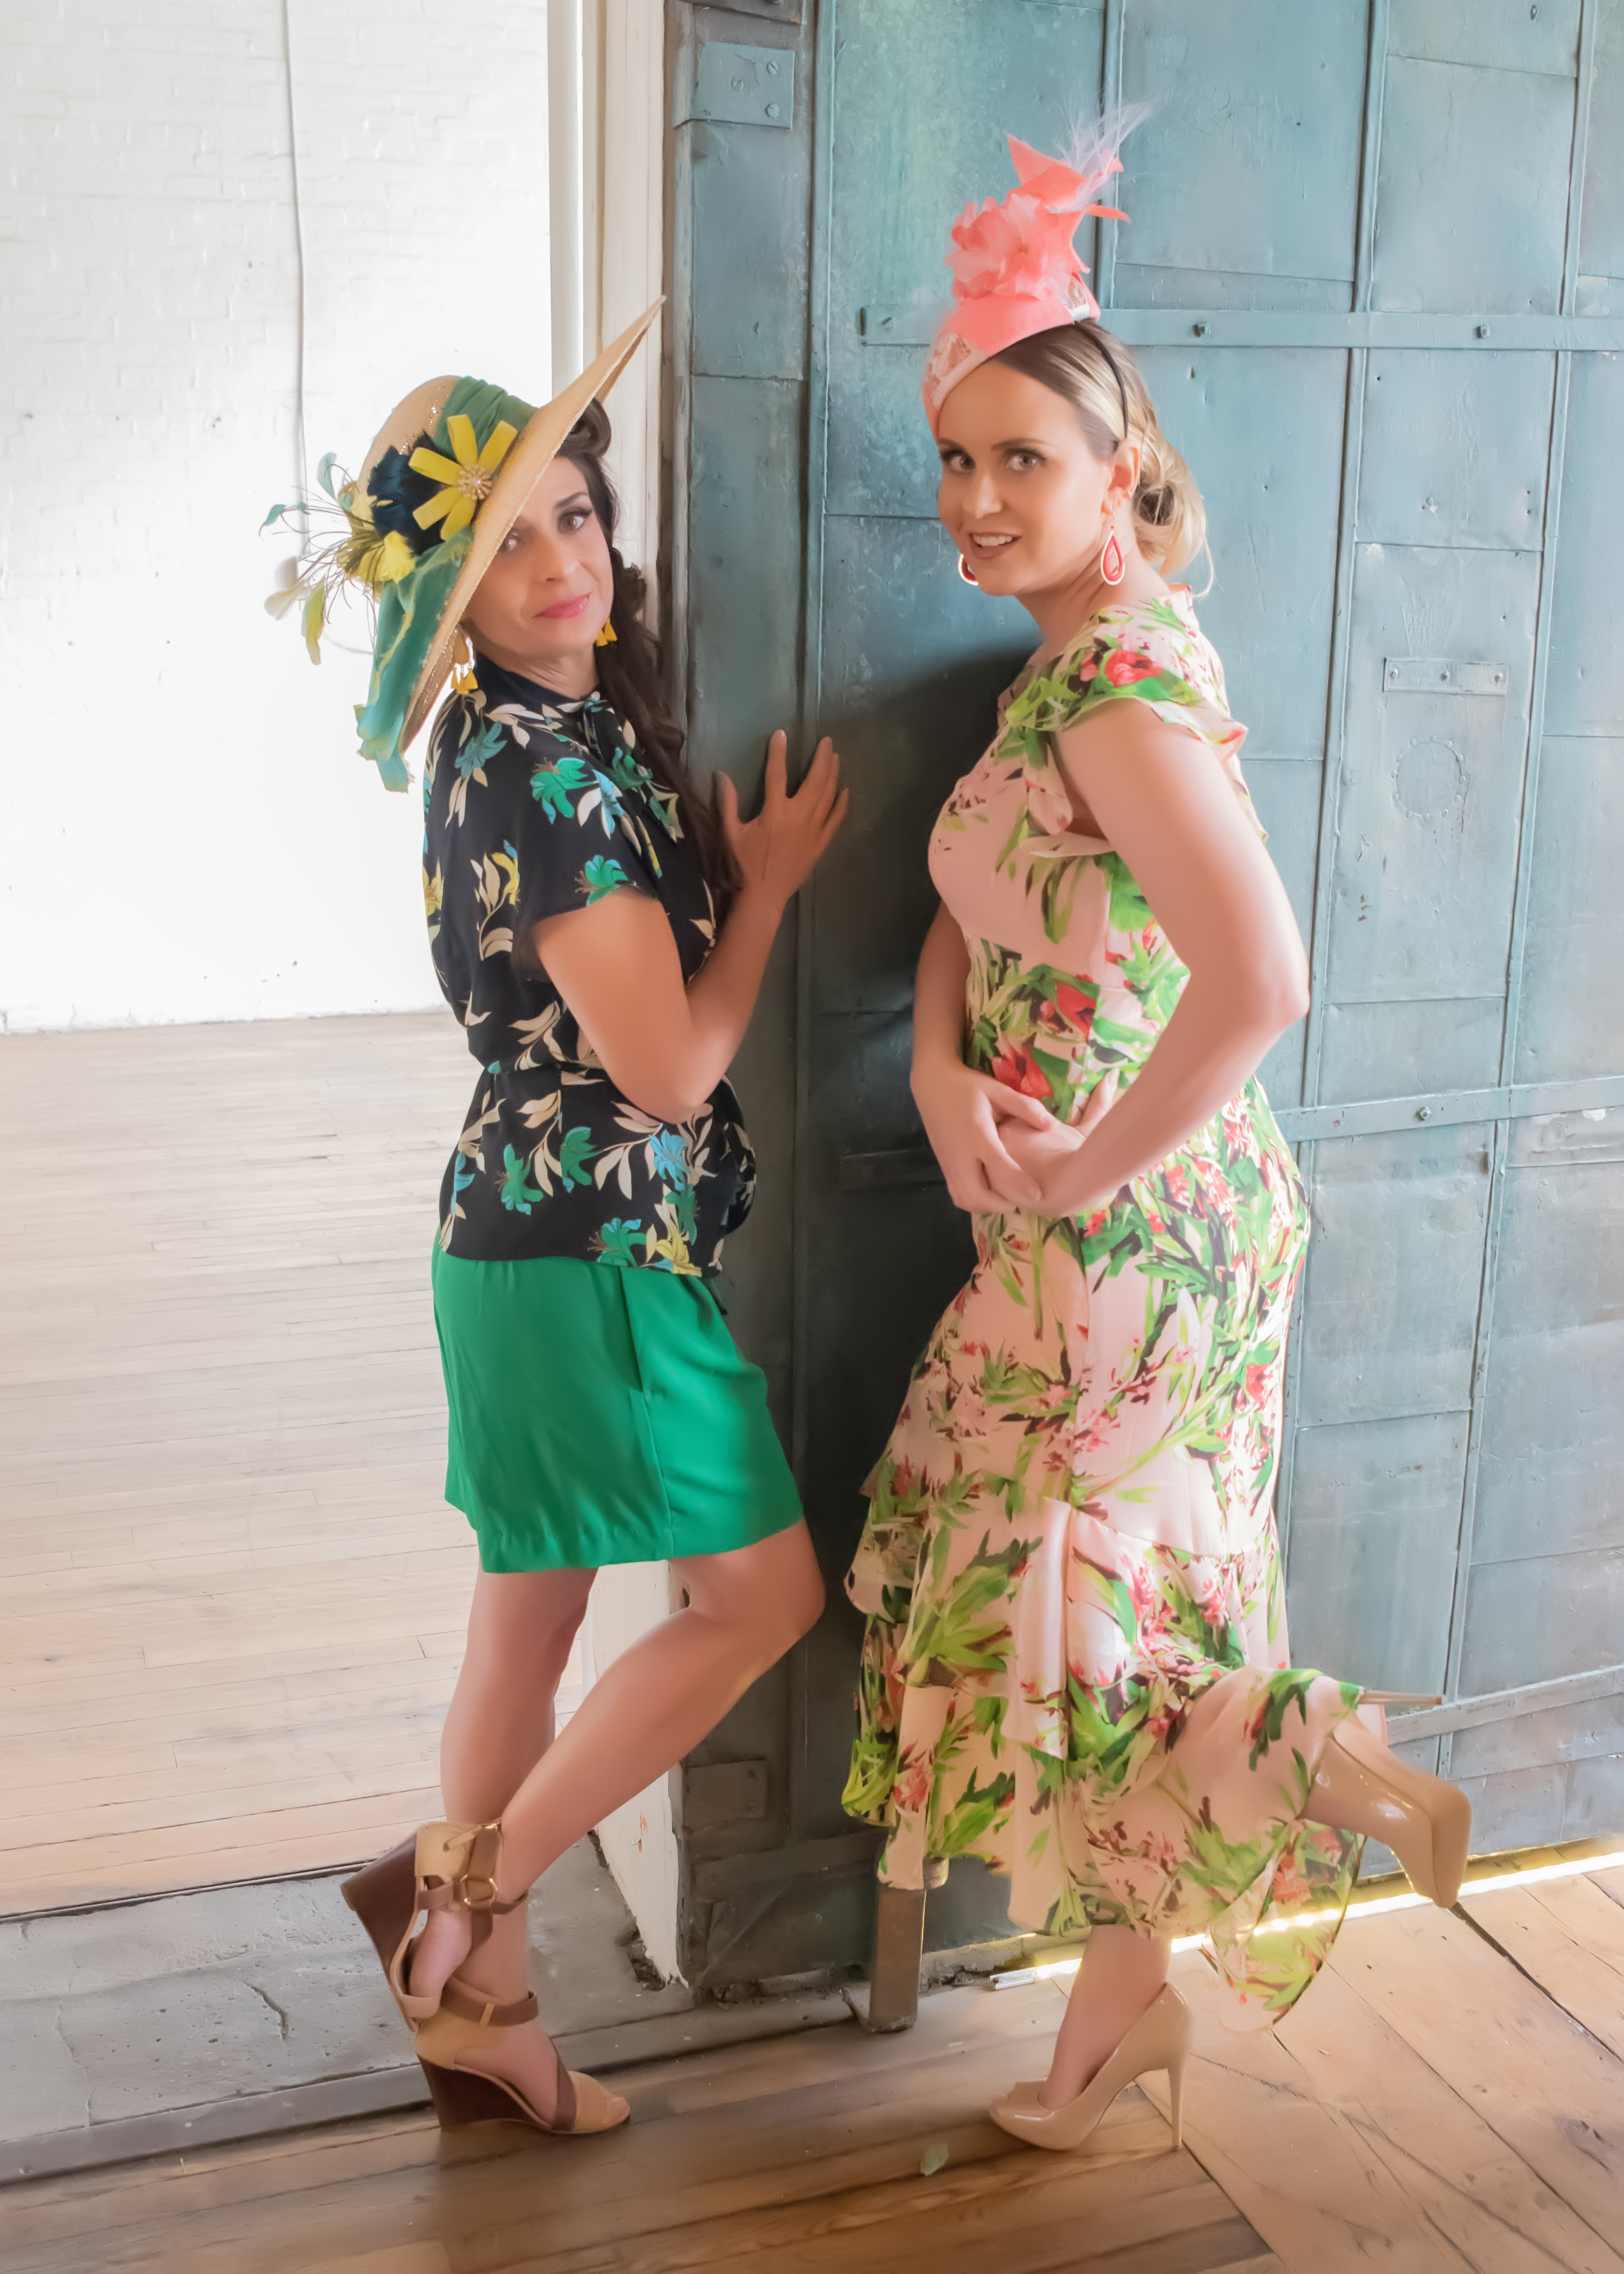 Palm Paradise Models Alice Beckett-Rumberger and Sindel Taylor posing near a repurposed garage door painted in a fun blue hue.